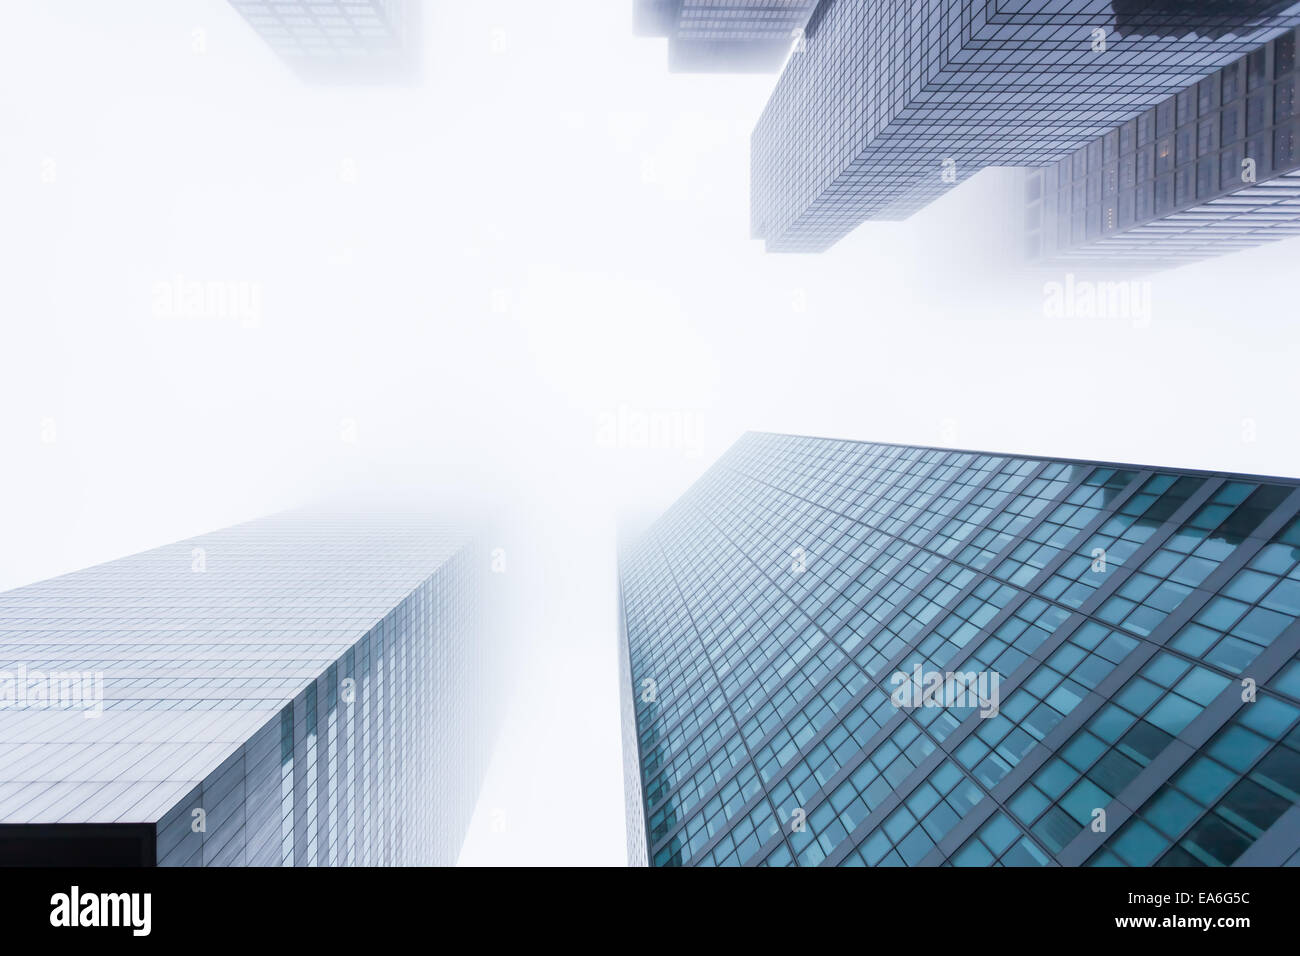 USA, New York State, New York City, Manhattan, View of skyscrapers in mist - Stock Image